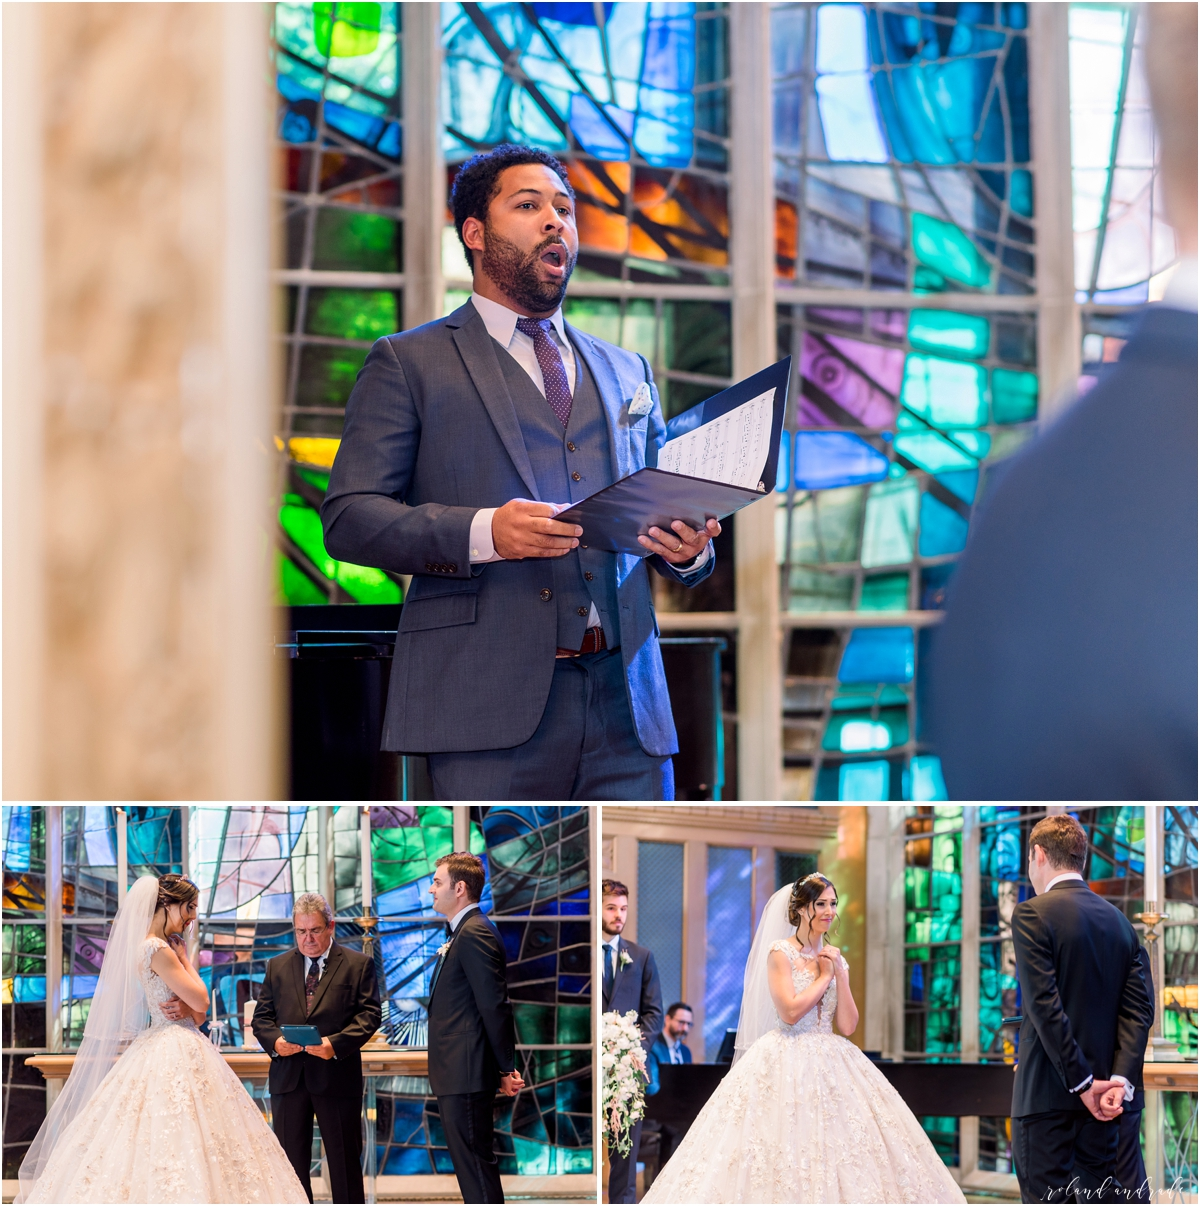 The Orrington Hotel Wedding, Alice Millar Chapel Wedding, Chicago Wedding Photographer, Aurora Wedding Photographer, Best Photographer In Aurora, Best Photographer In Chicago_0046.jpg